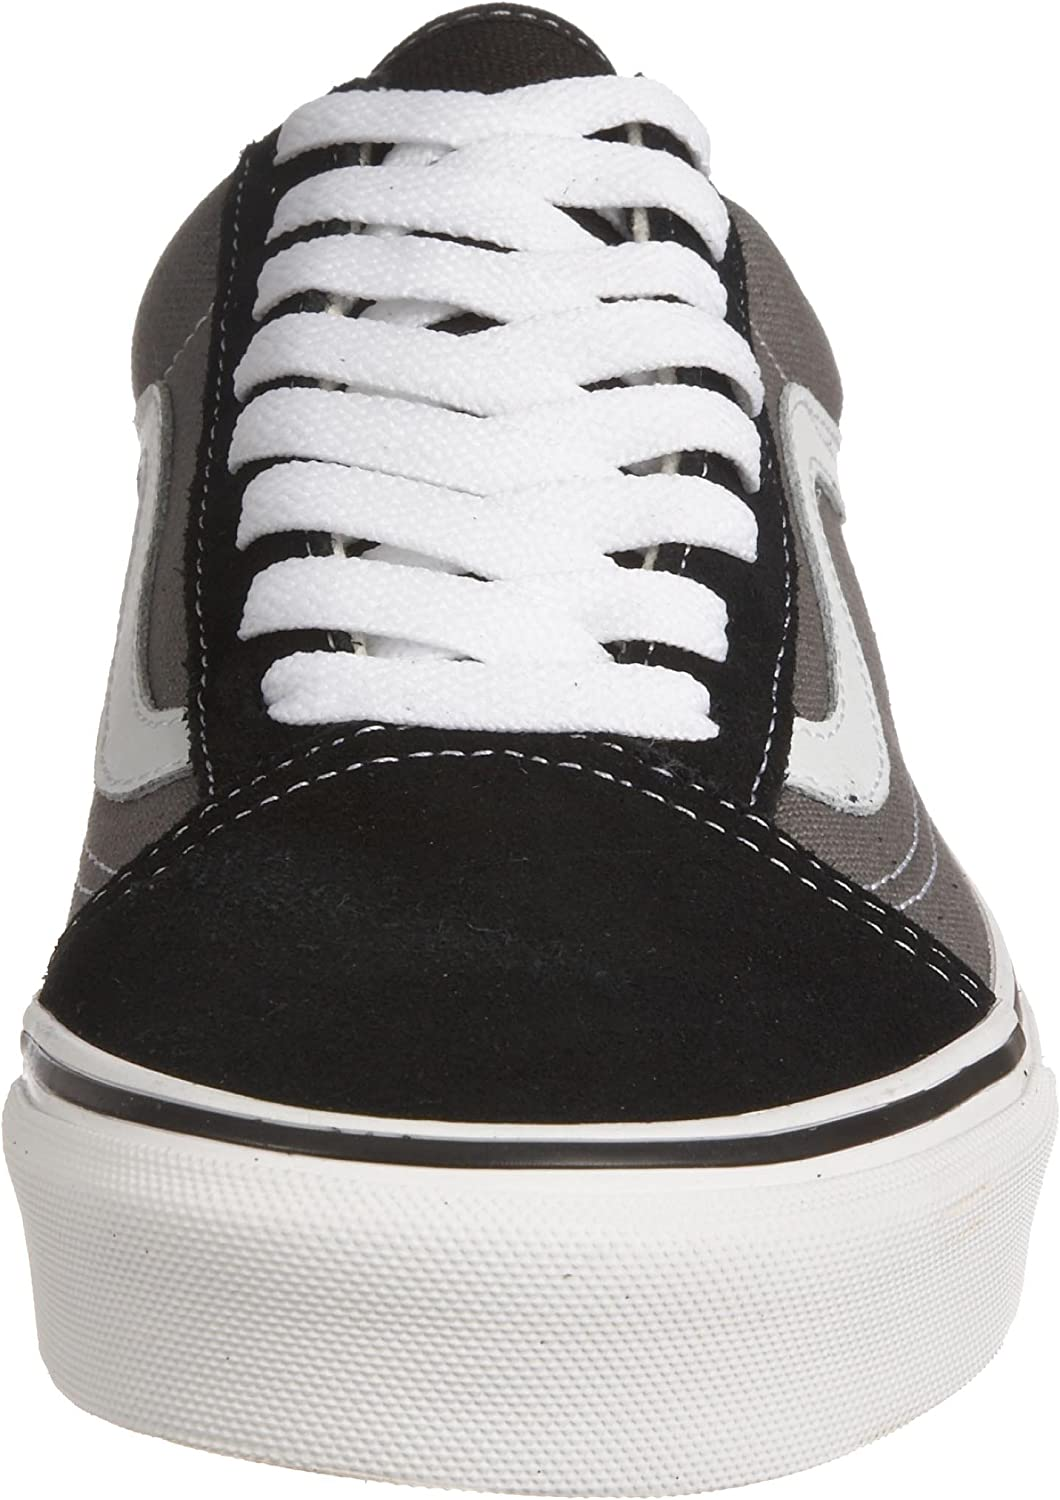 Vans Old Skool Classic SuedeCanvas, Baskets Basses Mixte Adulte